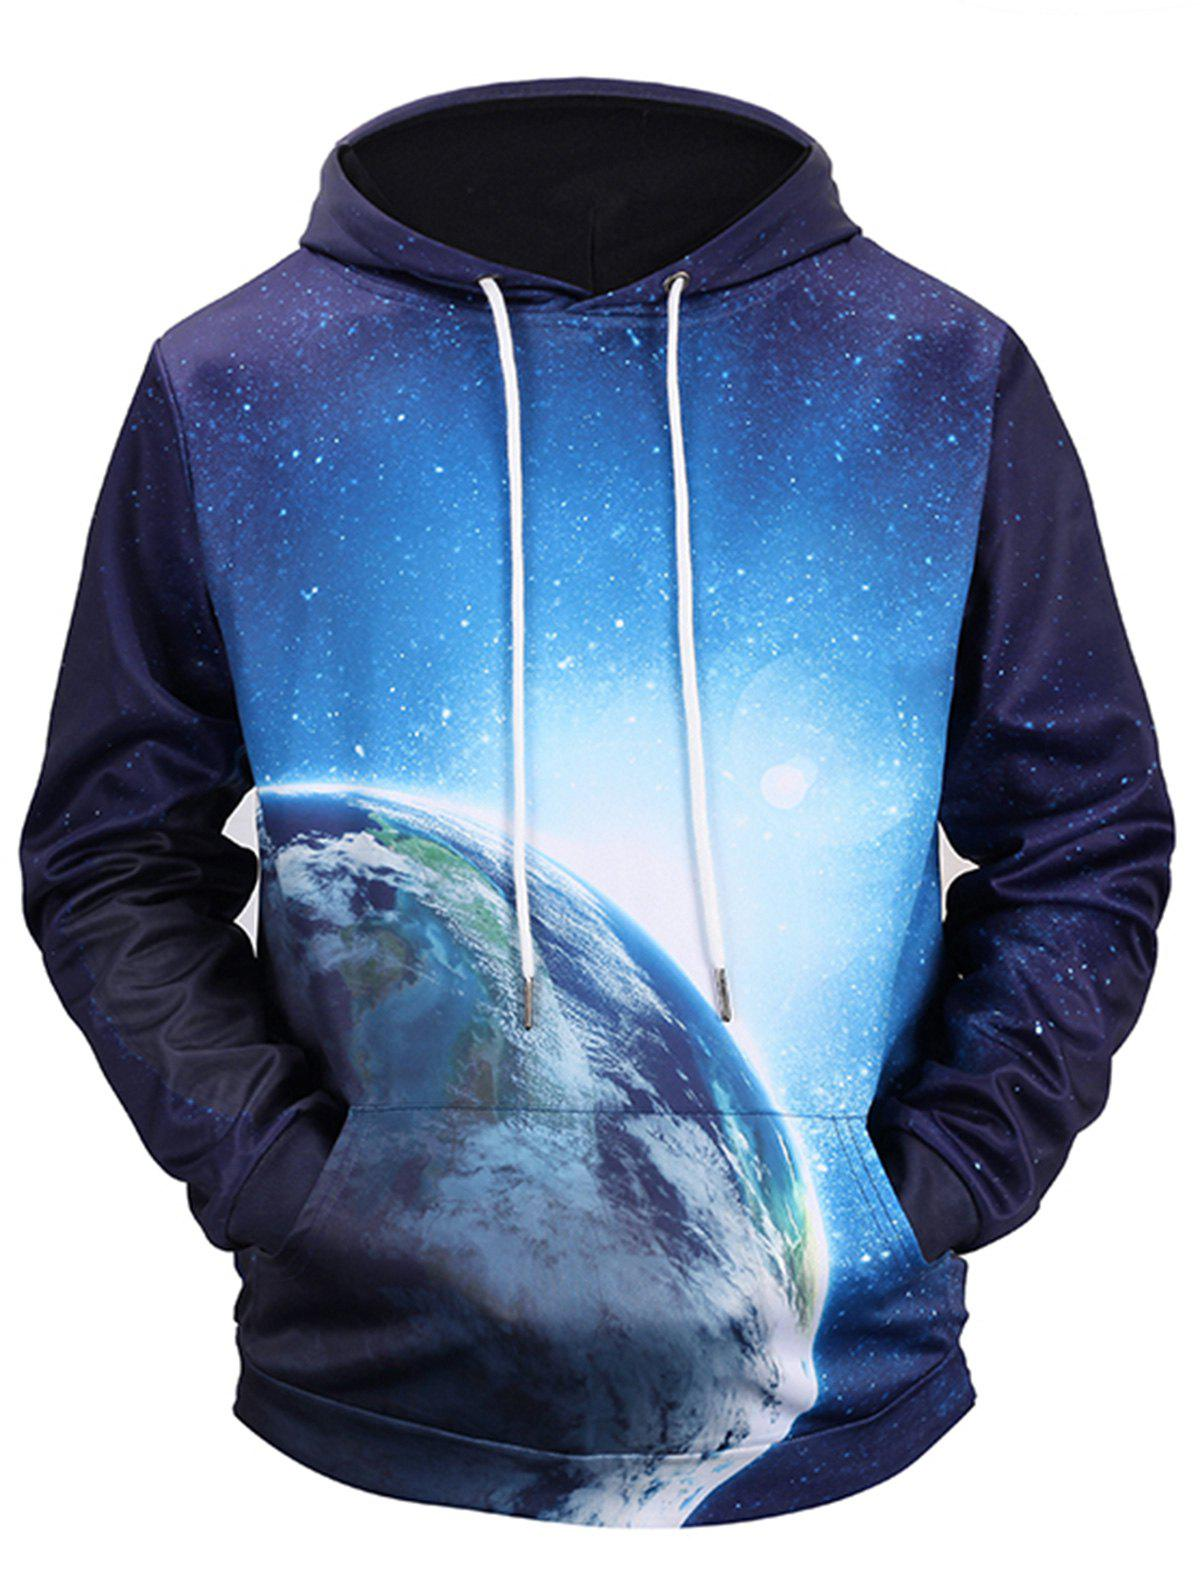 3D Space Print Drawstring Pullover Hoodie - COLORMIX L